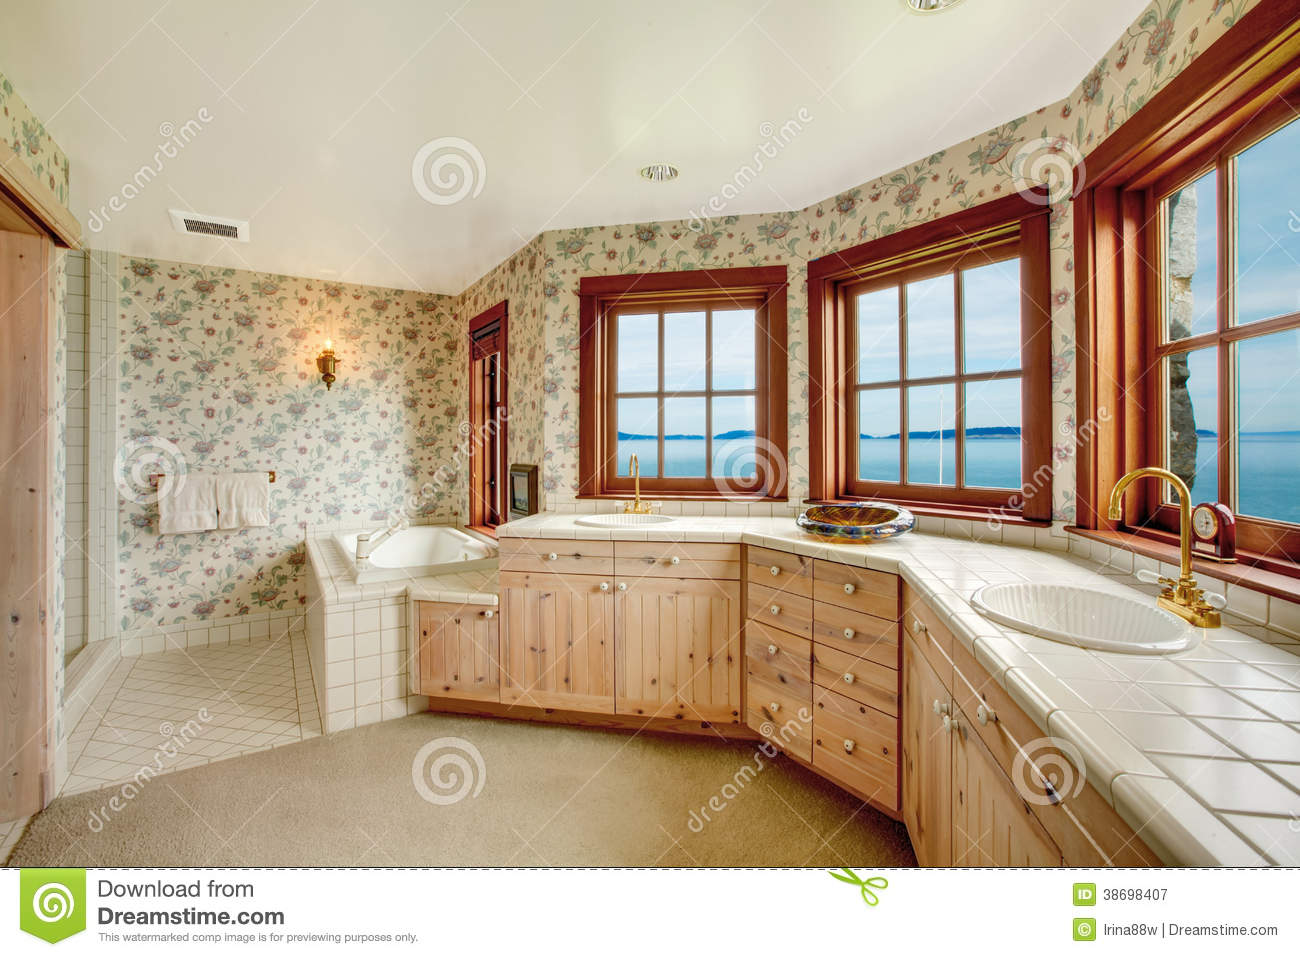 Amazing Floral Bathroom With French Windows Stock Image Image Of